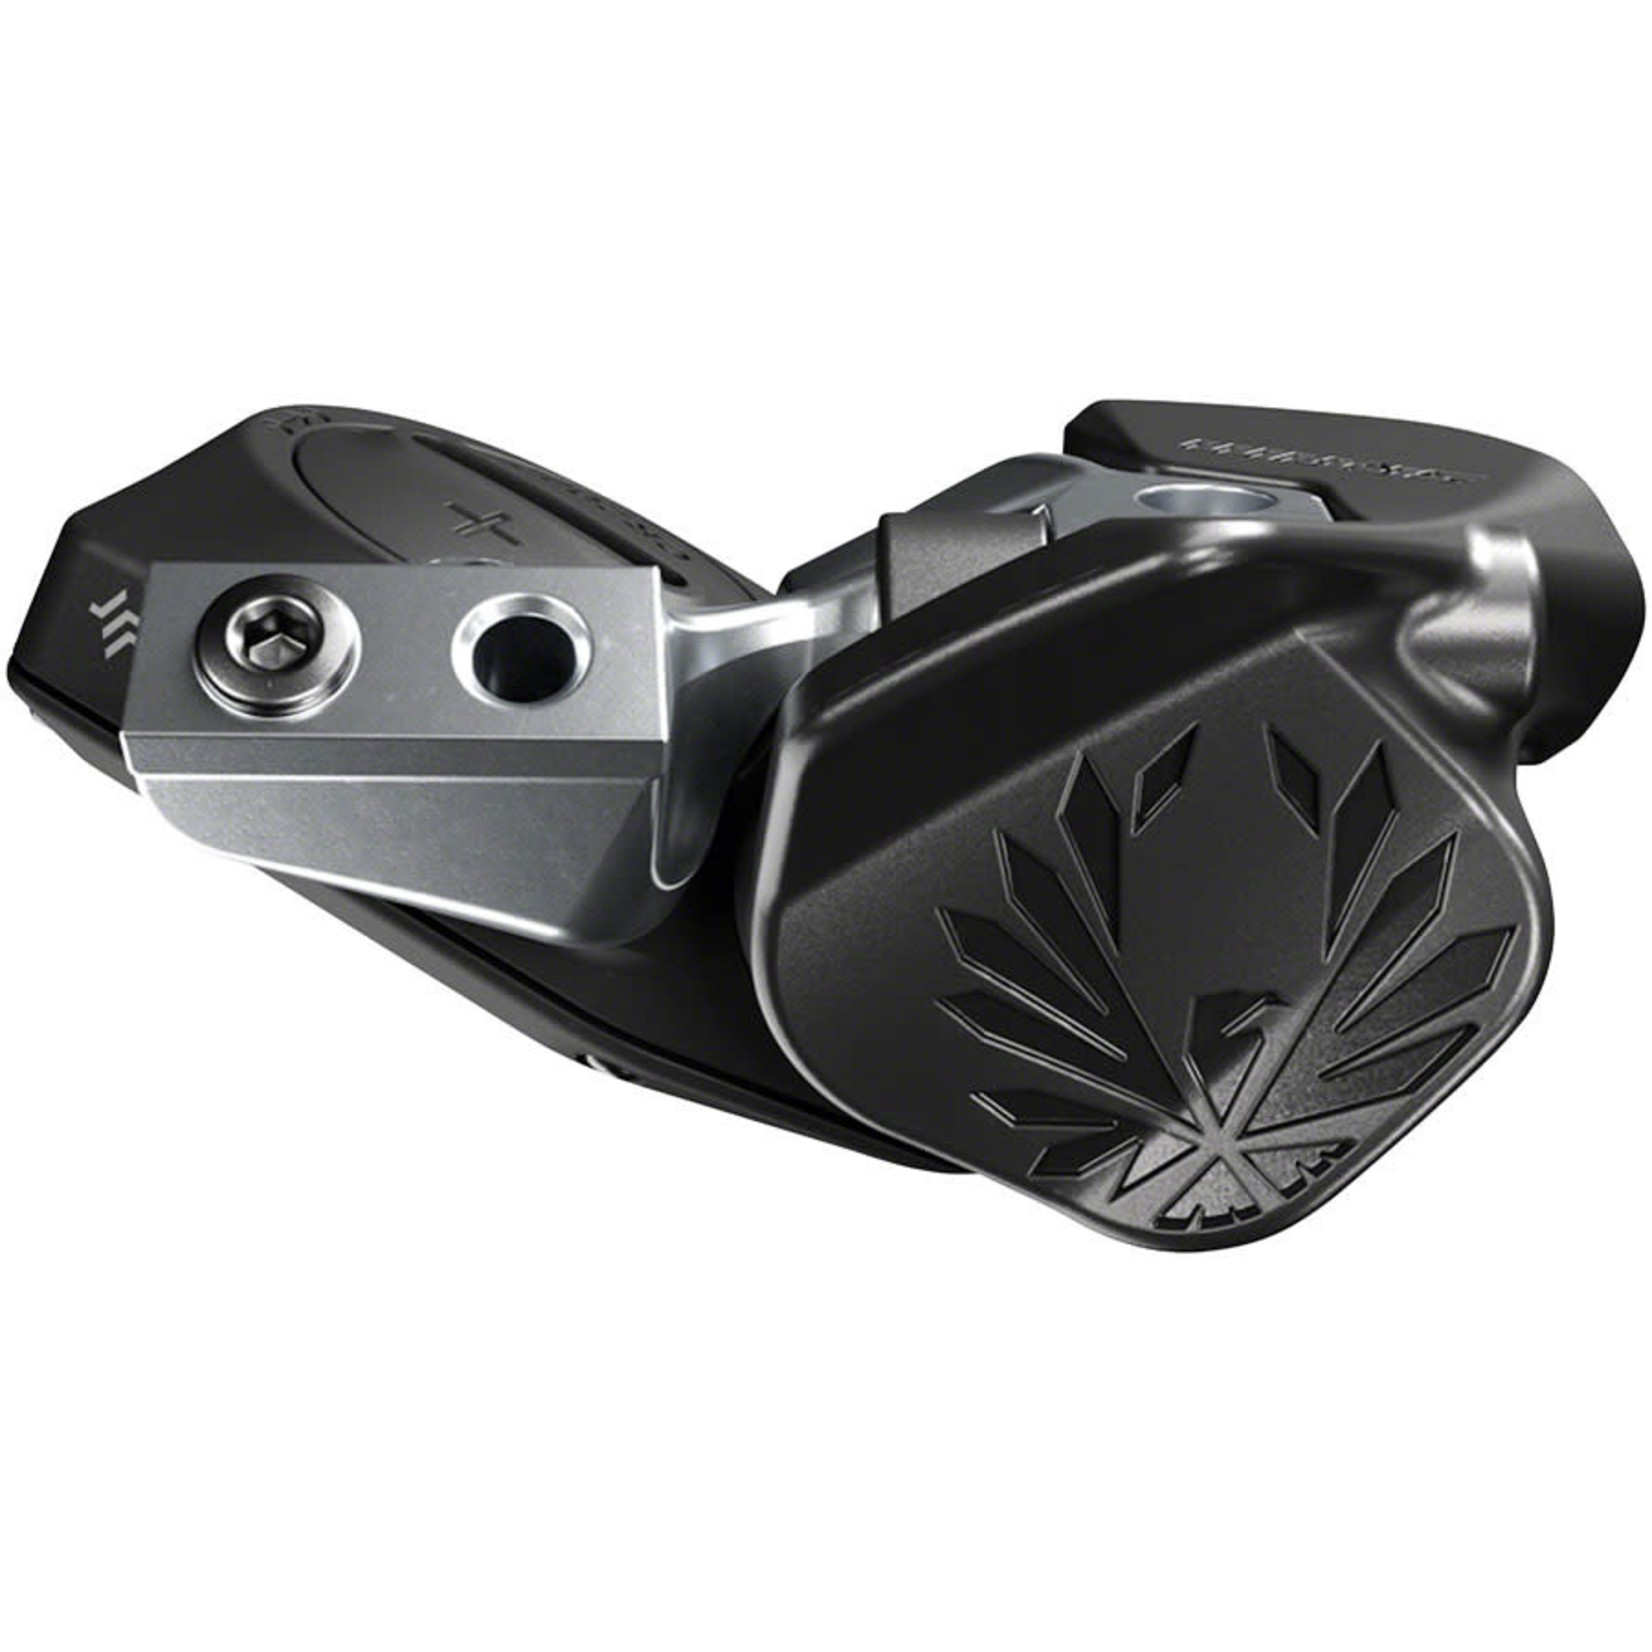 SRAM SRAM XX1 Eagle AXS Upgrade Kit - Rear Derailleur for 10-52t, Battery, Eagle AXS Controller w/ Clamp, Charger/Cord